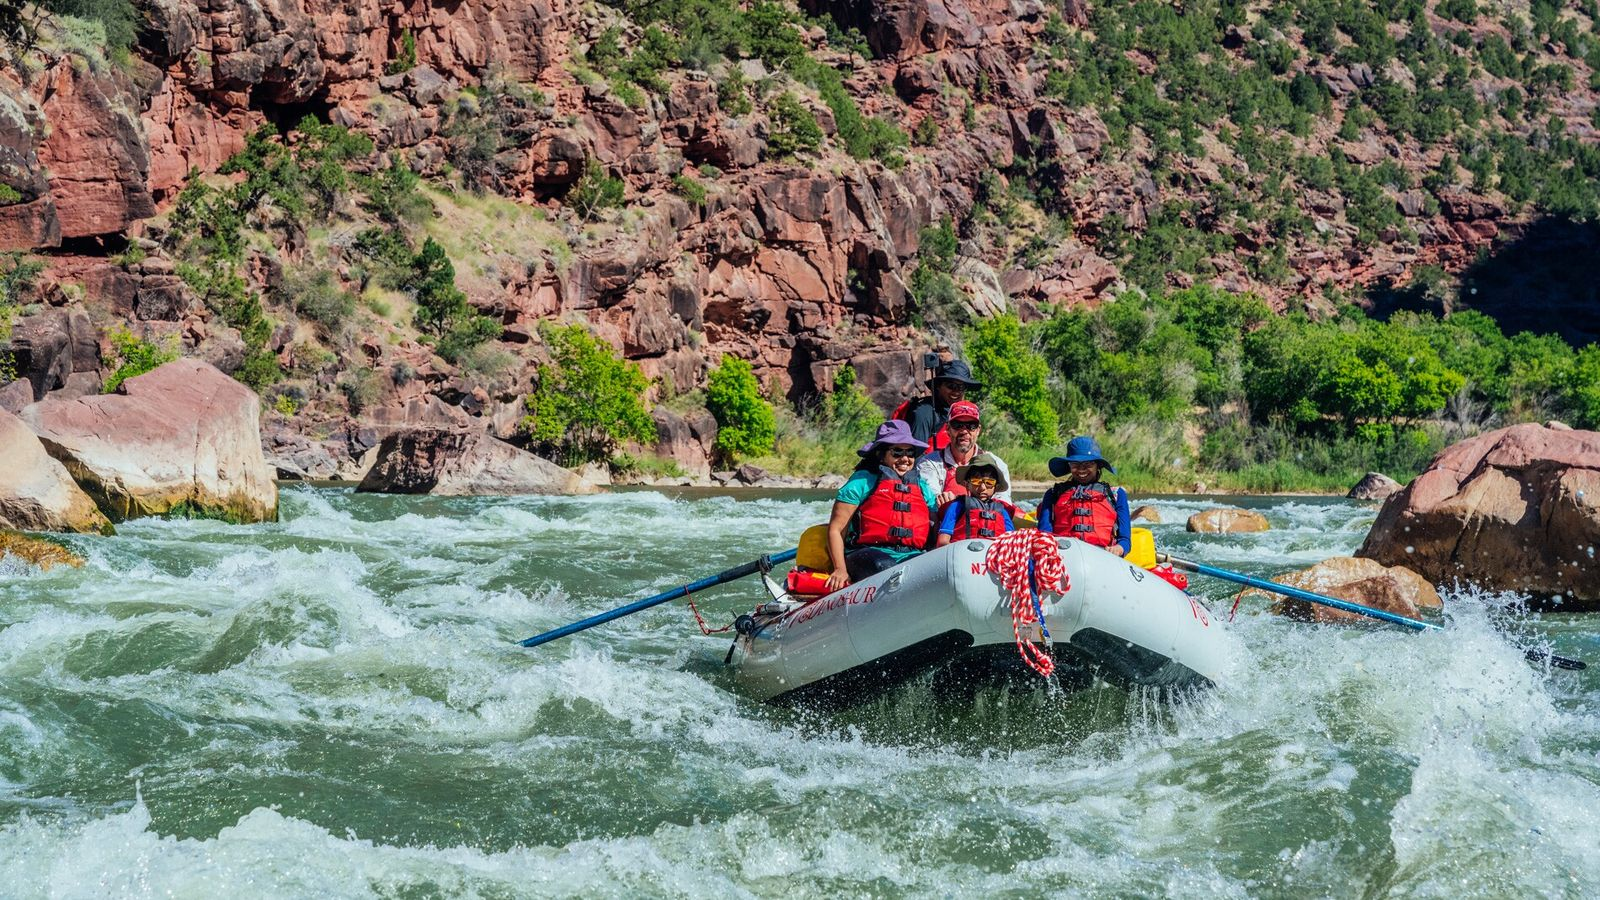 Just outside Flaming Gorge National Recreation Area, travellers can whitewater raft down the Green River, where ...